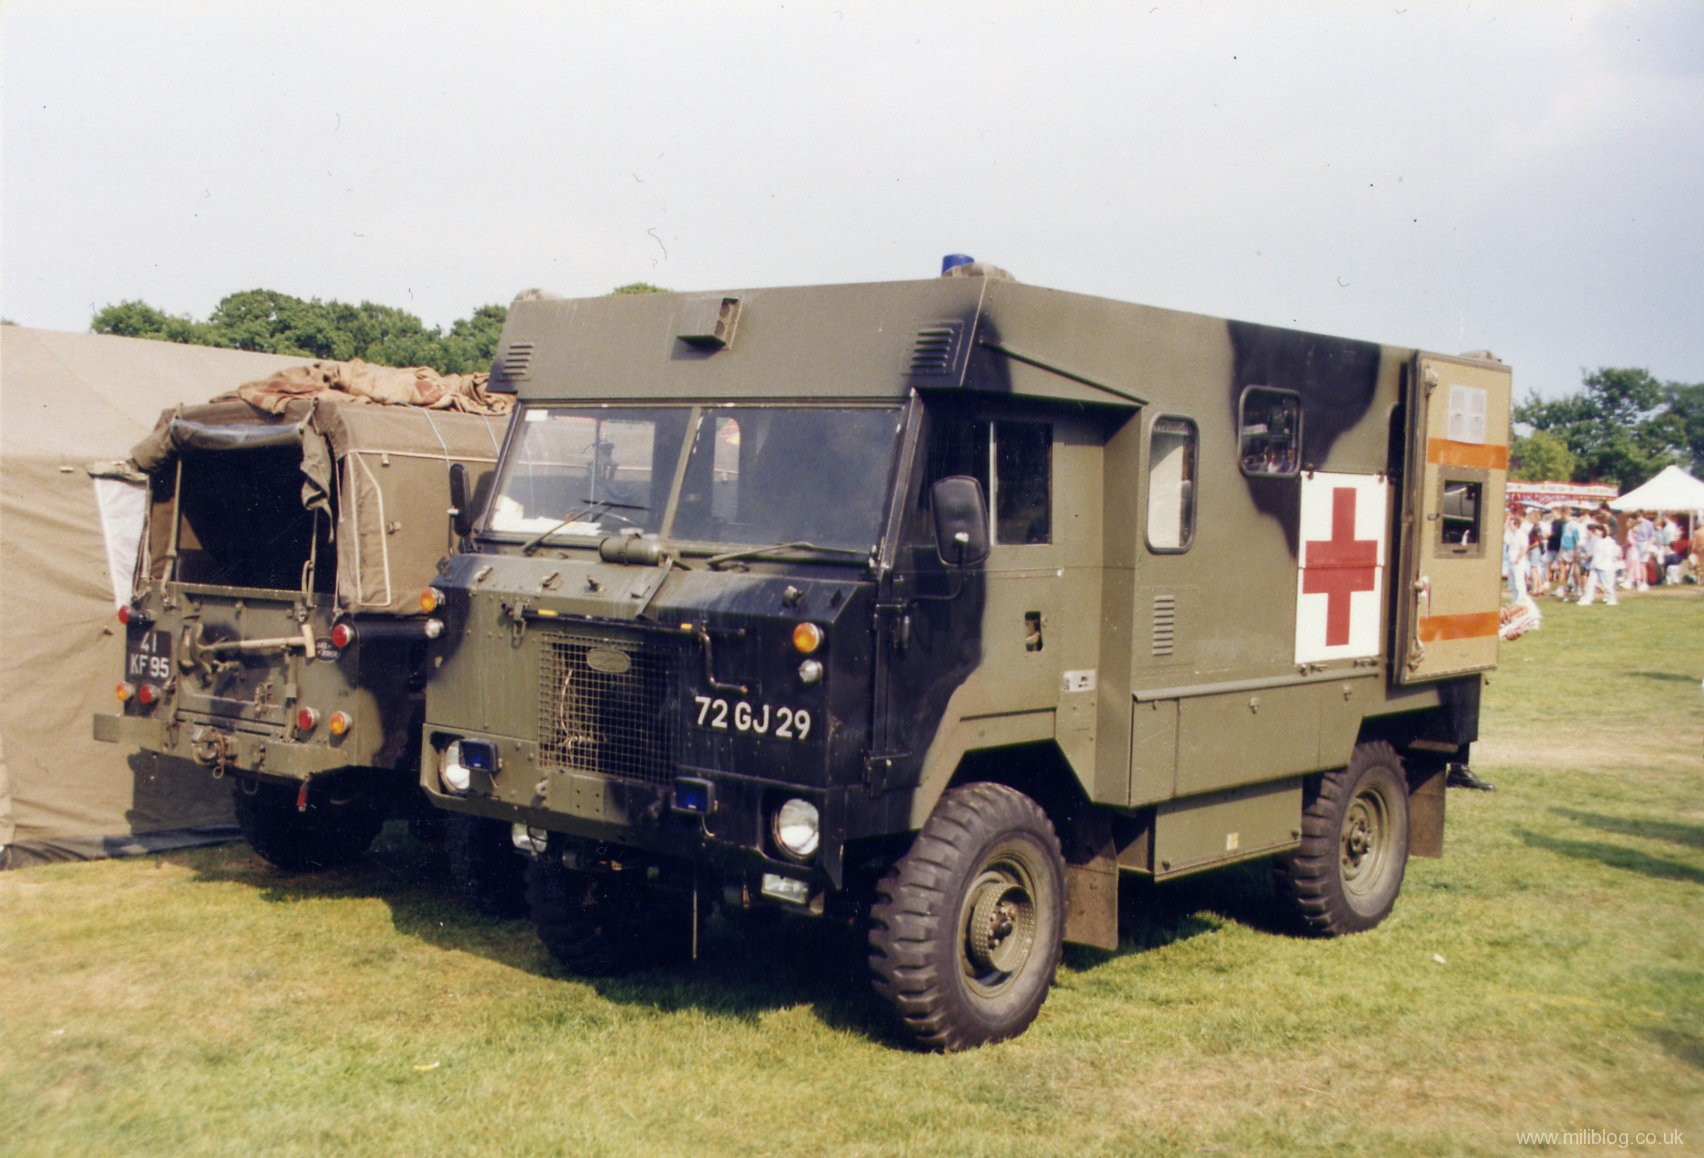 military items military vehicles military trucks military land rover 101 ambulance 72 gj 29